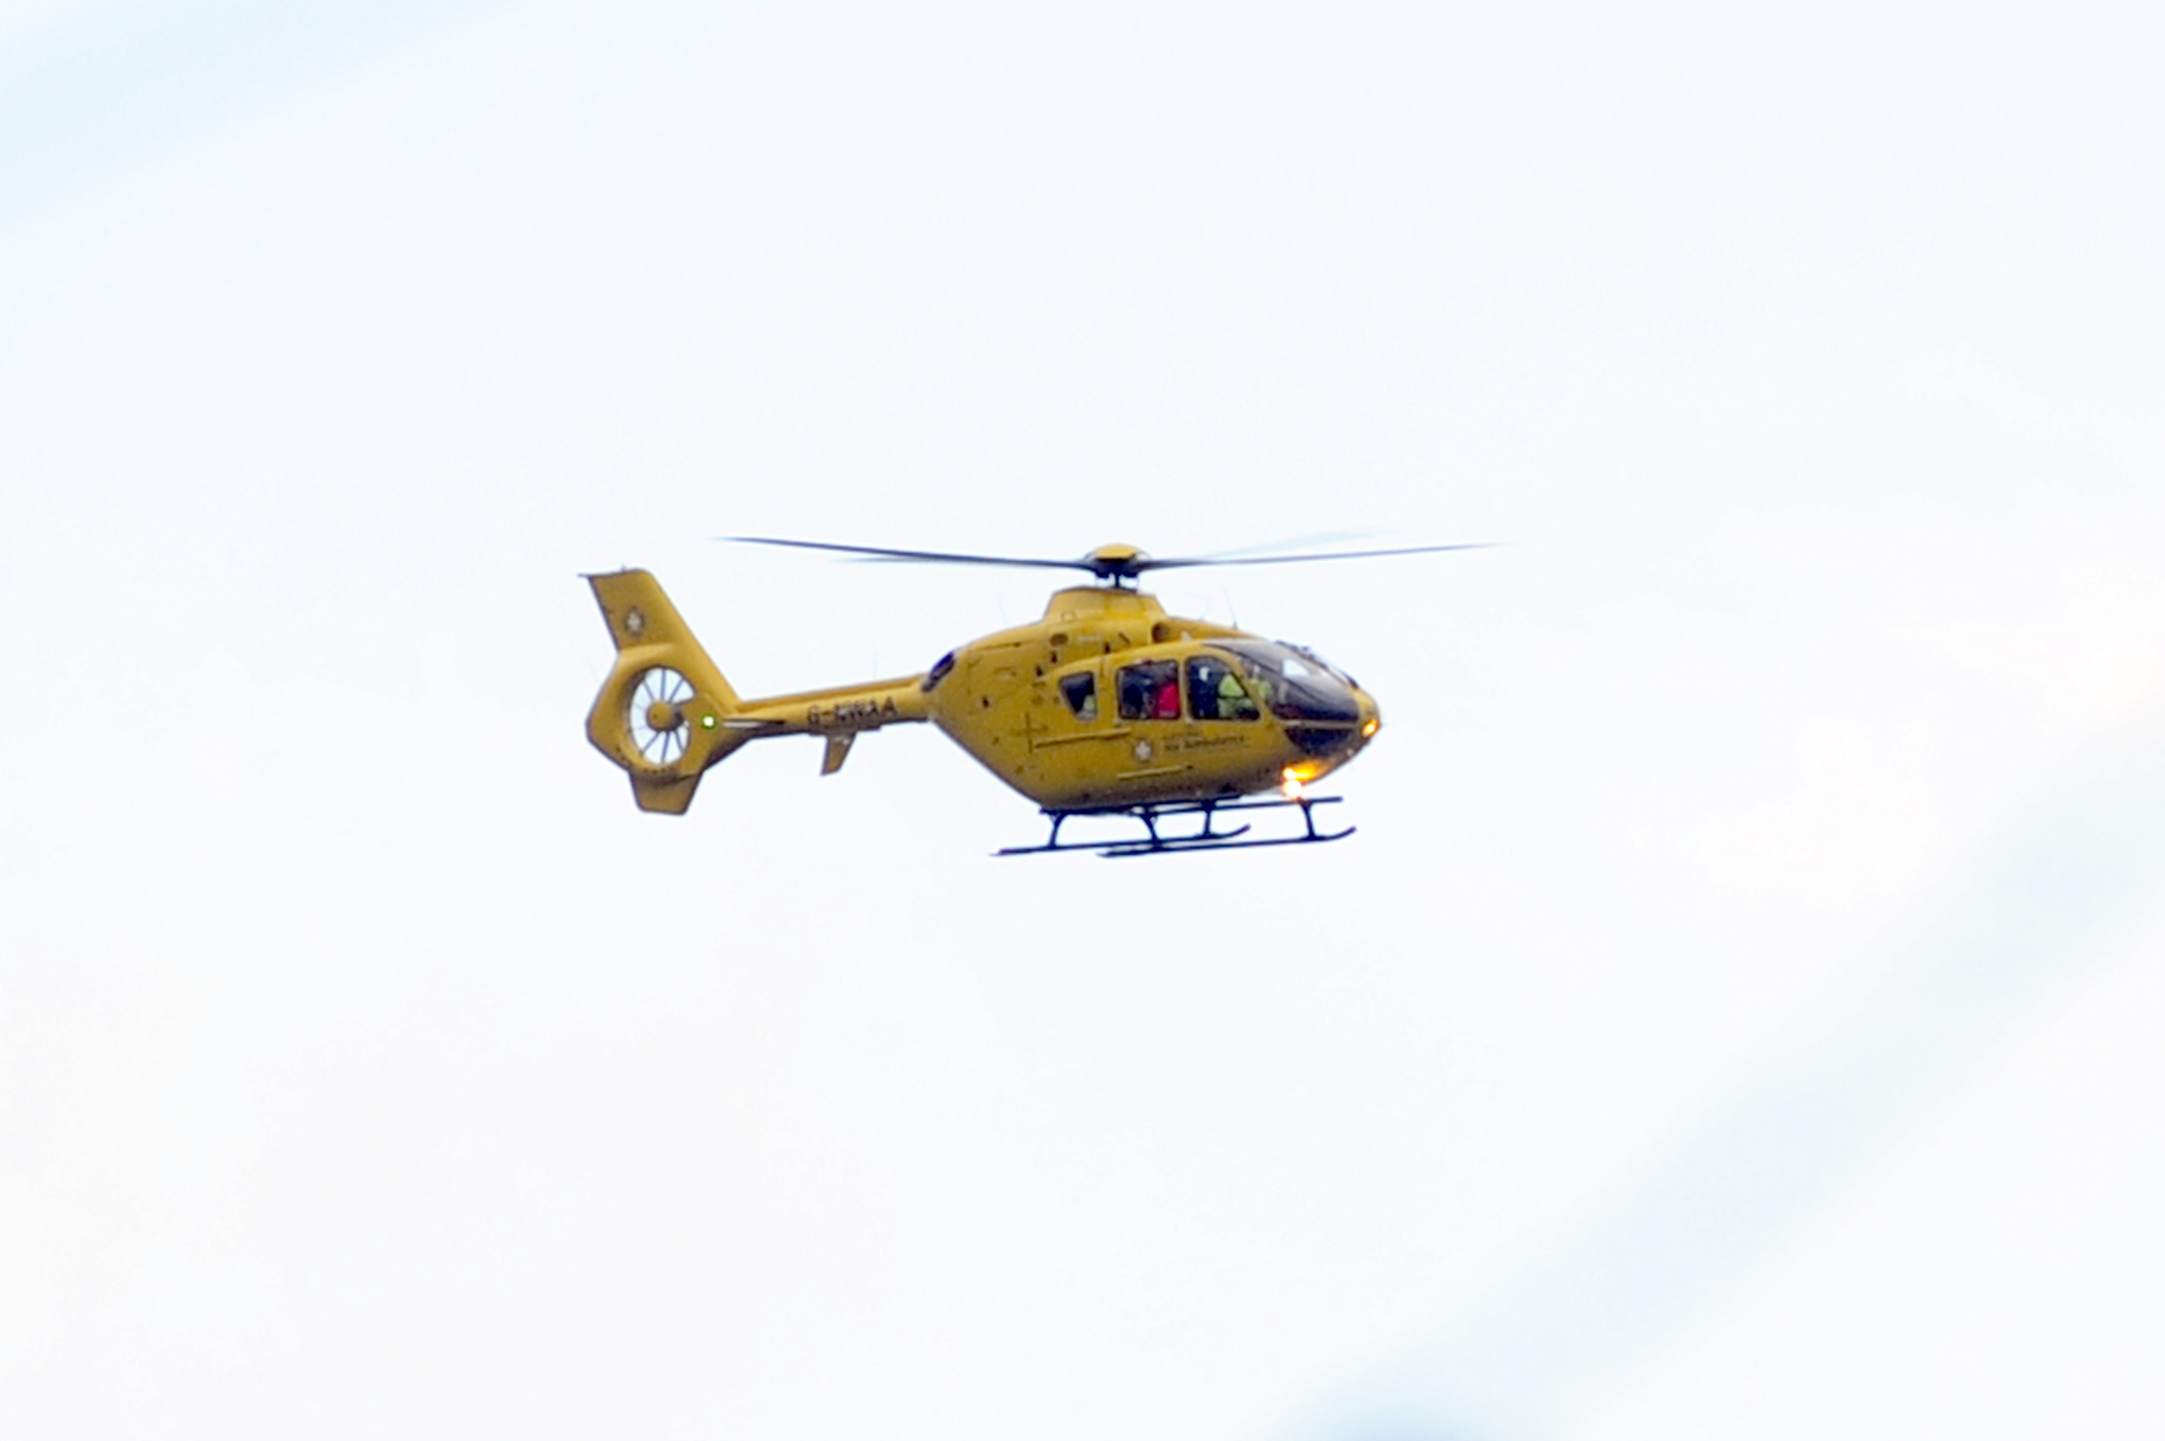 County's air ambulance is safe to fly after fuel problem fixed